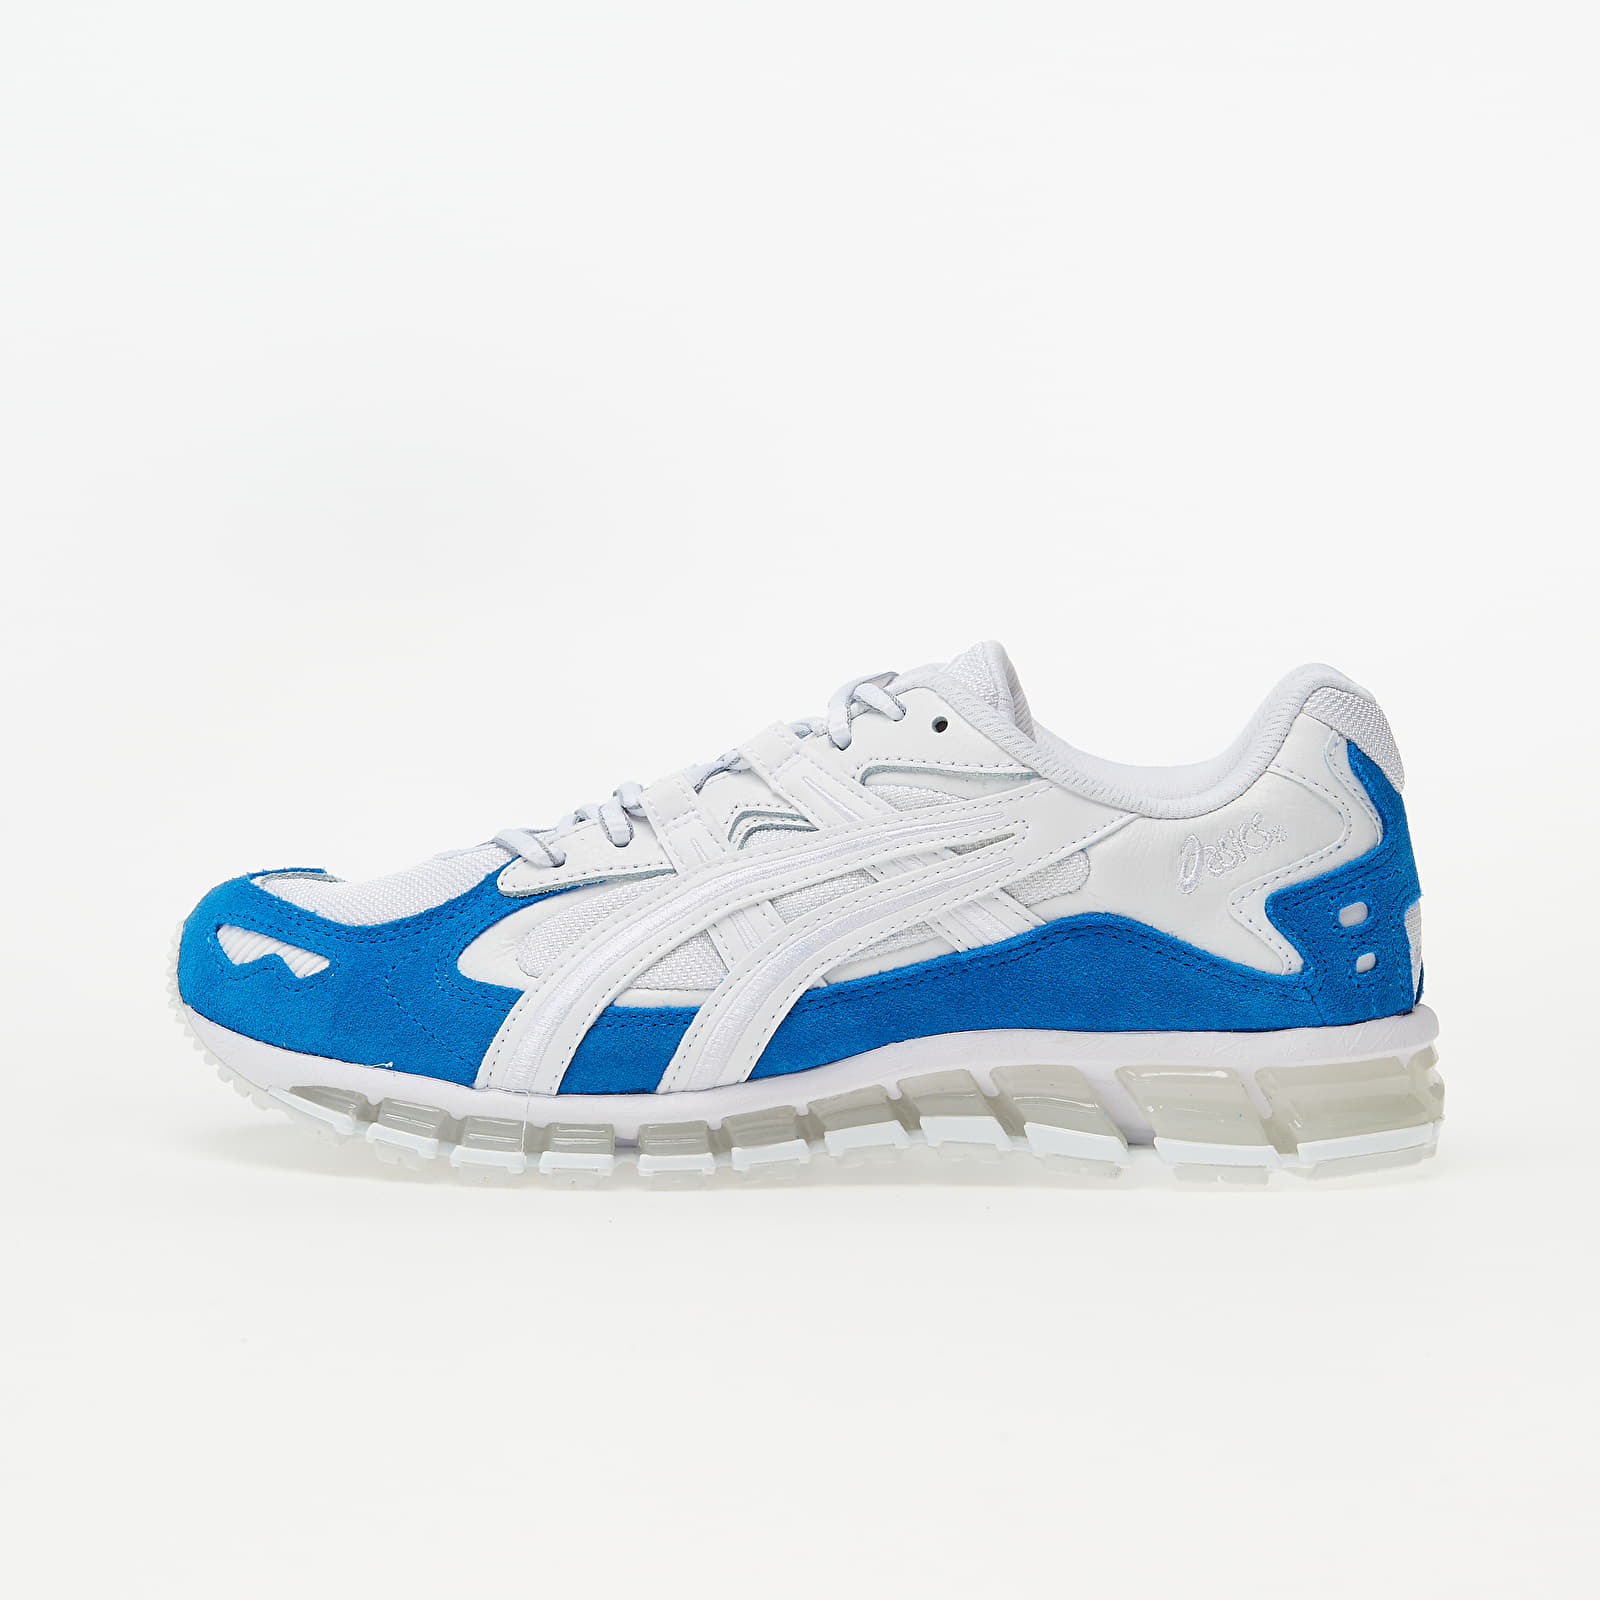 Asics Gel-Kayano 5 360 White/ Electric Blue EUR 42